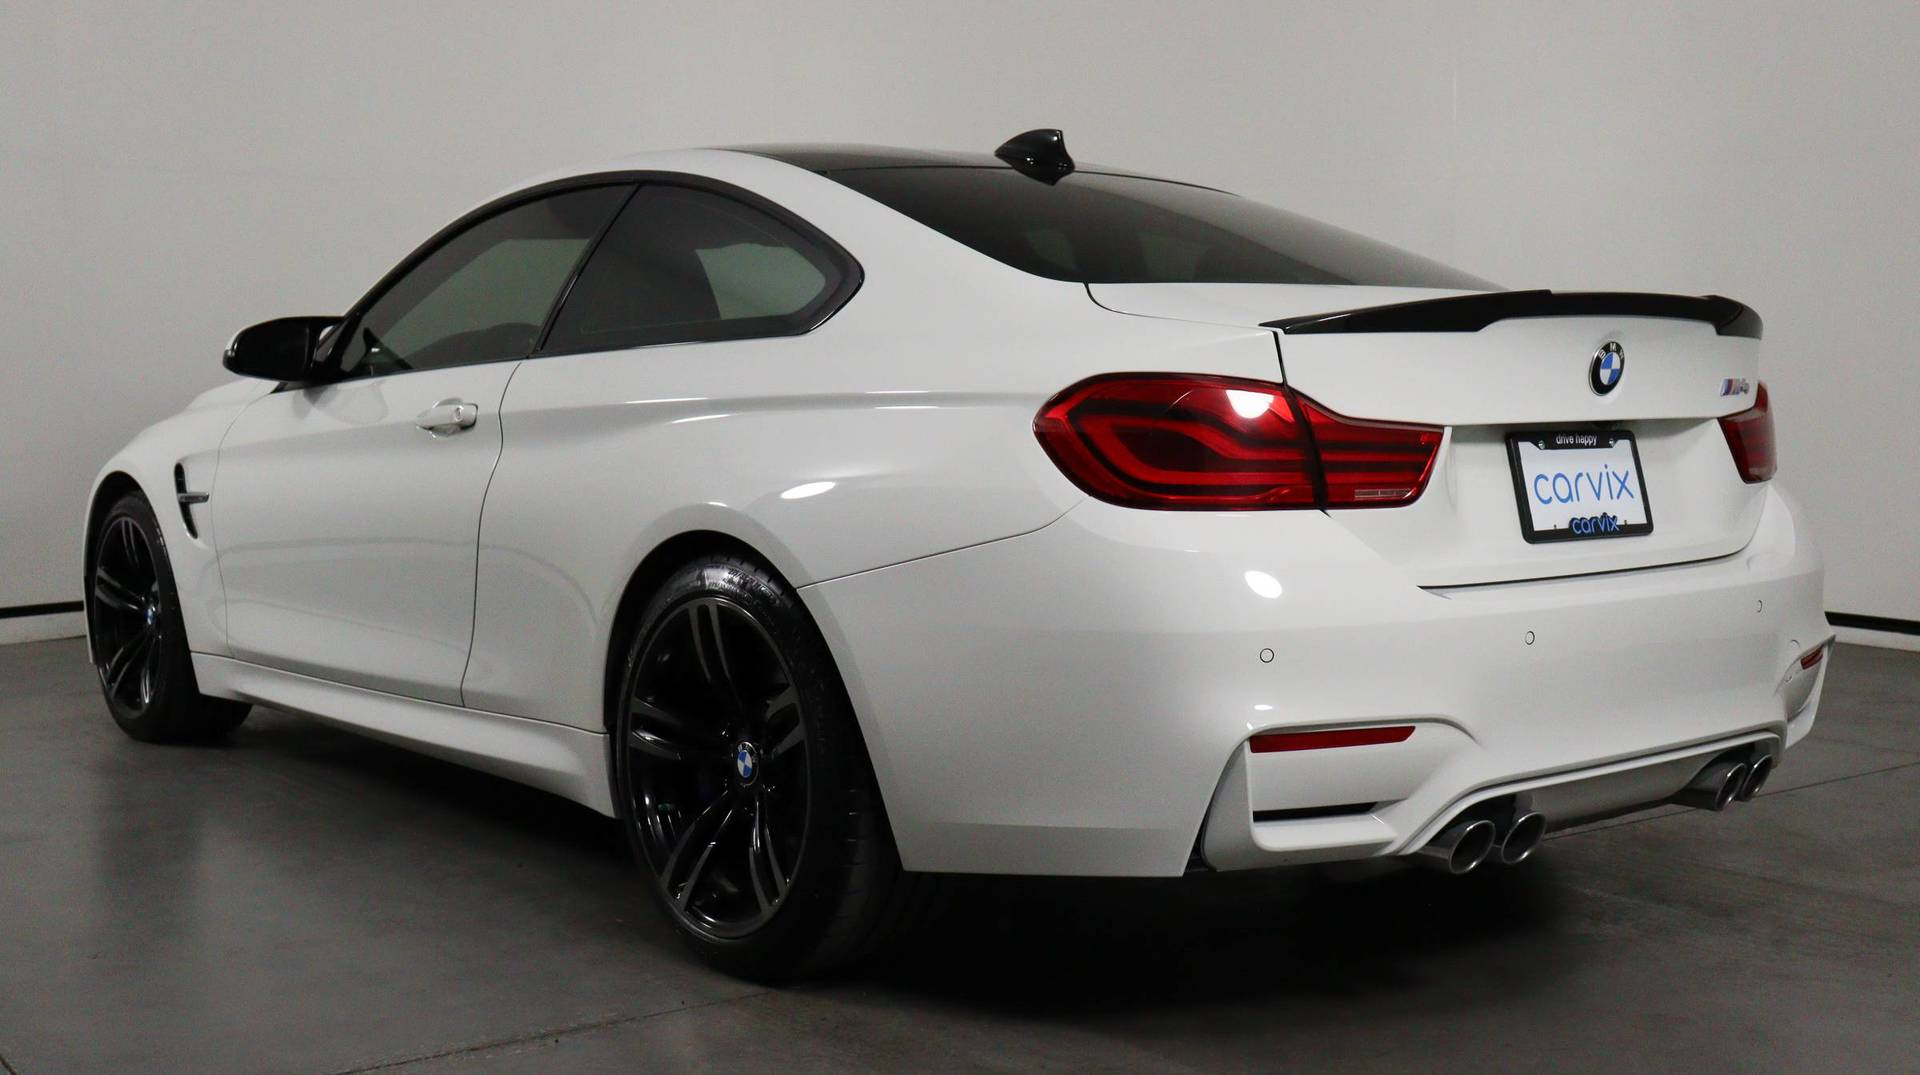 Carvix - Used vehicle - Coupe BMW M4 2019